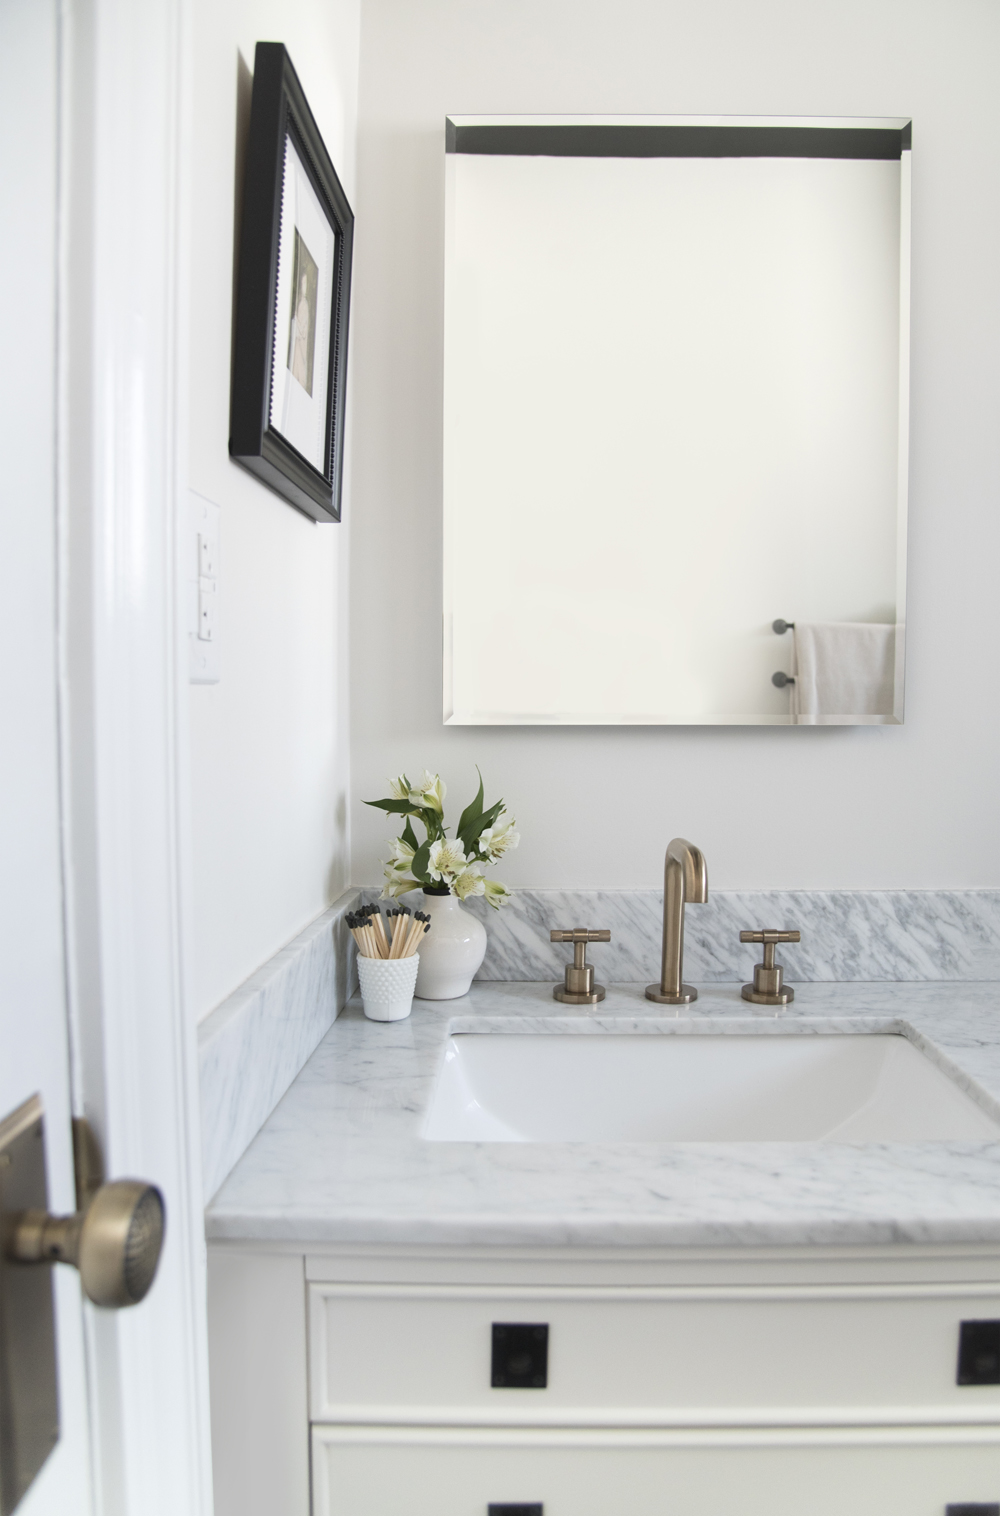 How We Choose : Widespread Bathroom Faucets - roomfortuesday.com